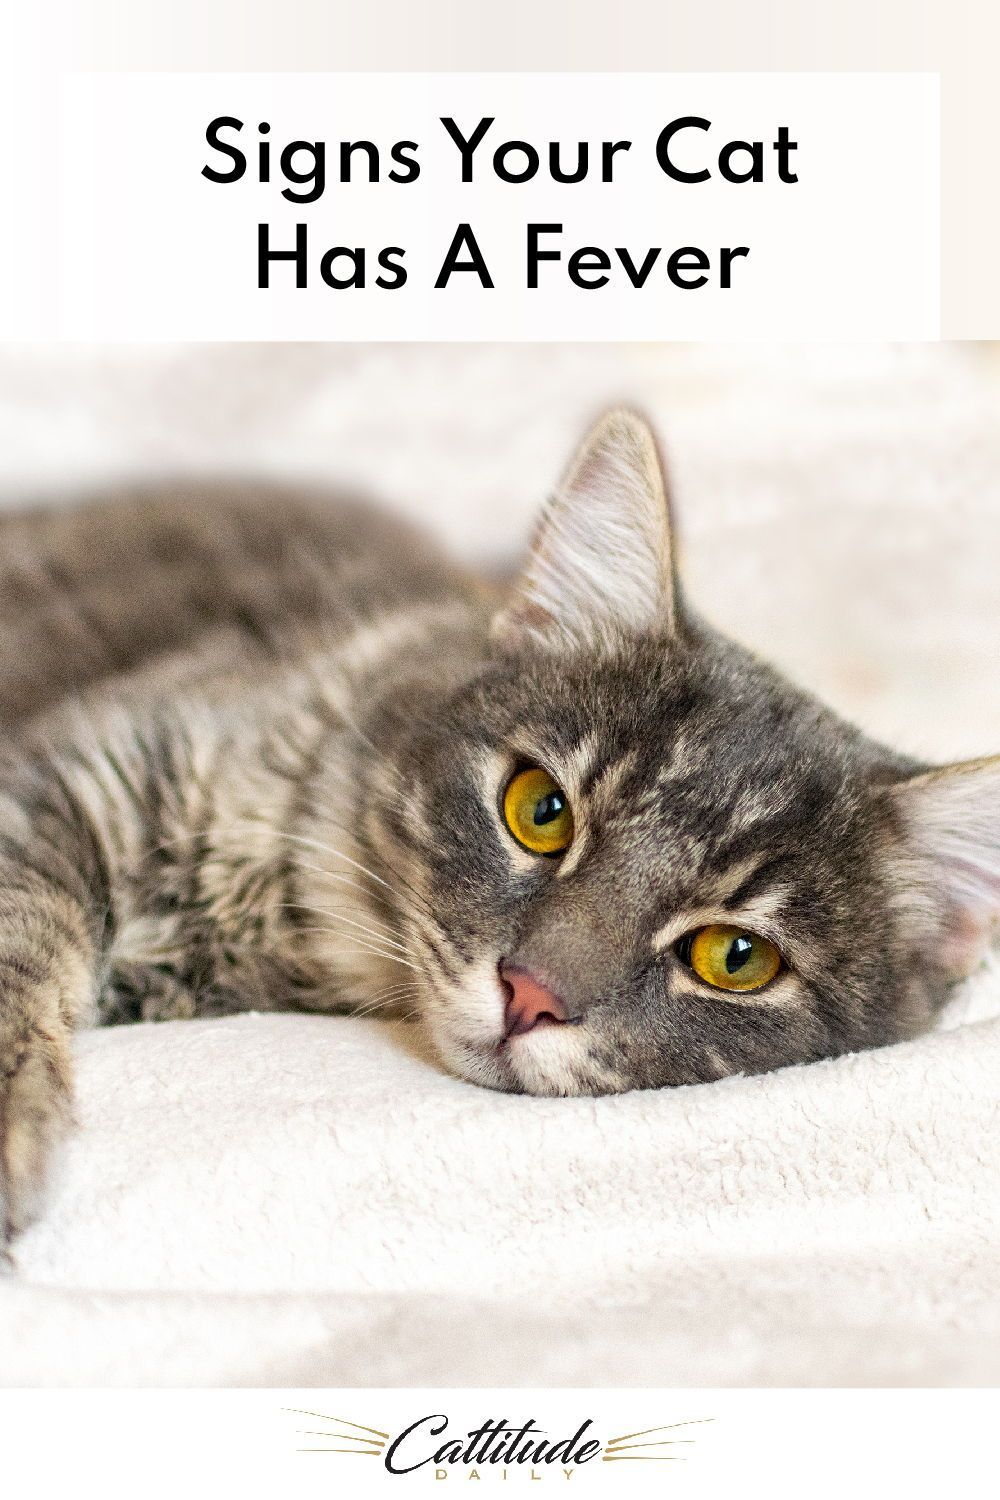 Signs Your Cat Has A Fever In 2020 Cats Cat Problems Sick Cat